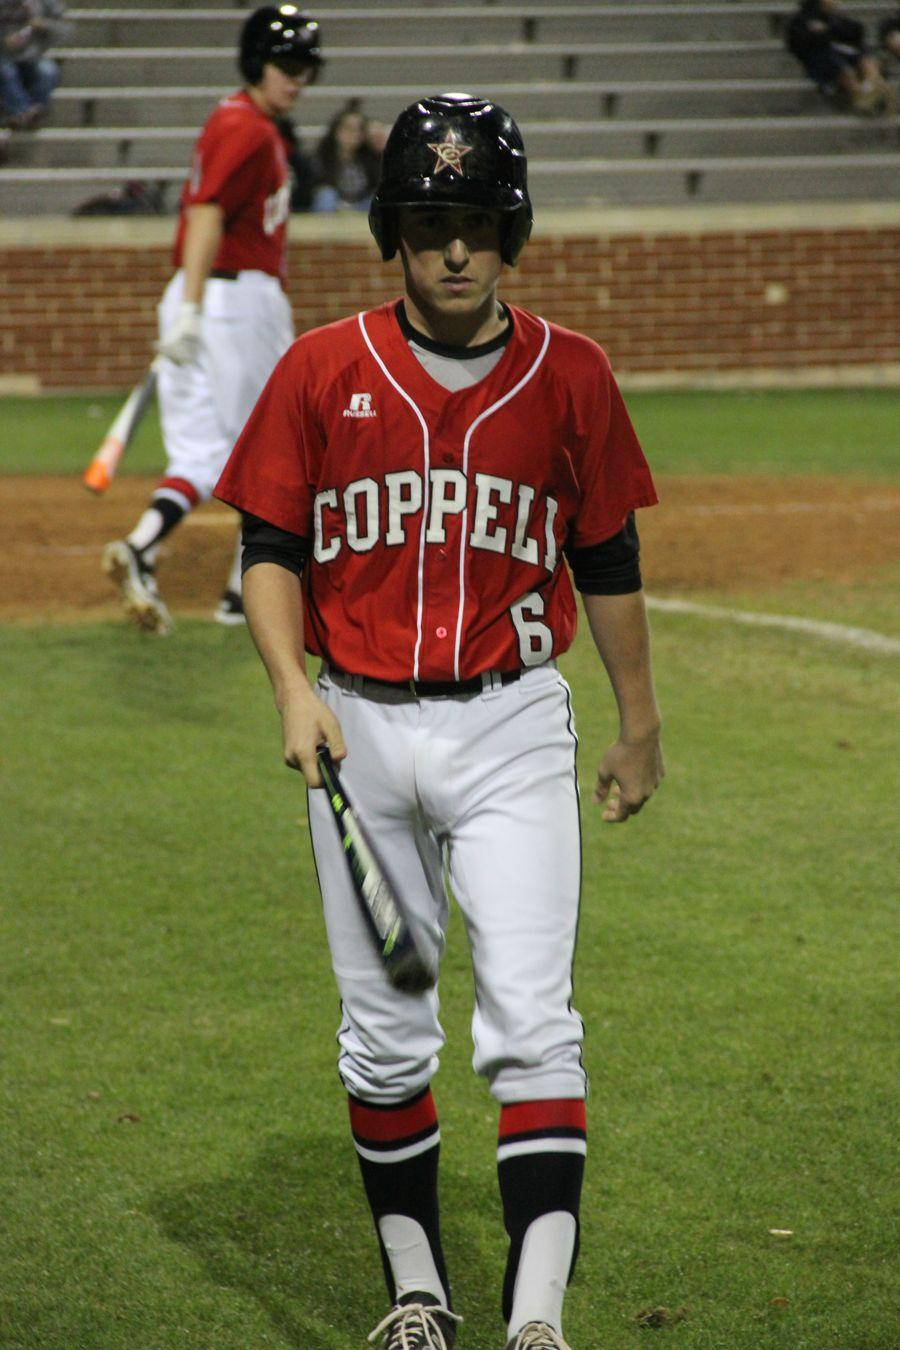 Coppell+High+School+junior+Nathan+Reedy+walks+off+after+batting+during+the+game+against+Trinity.+Cowboys+beat+the+Trojans+8-2+at+Trinity+High+School.+%0A